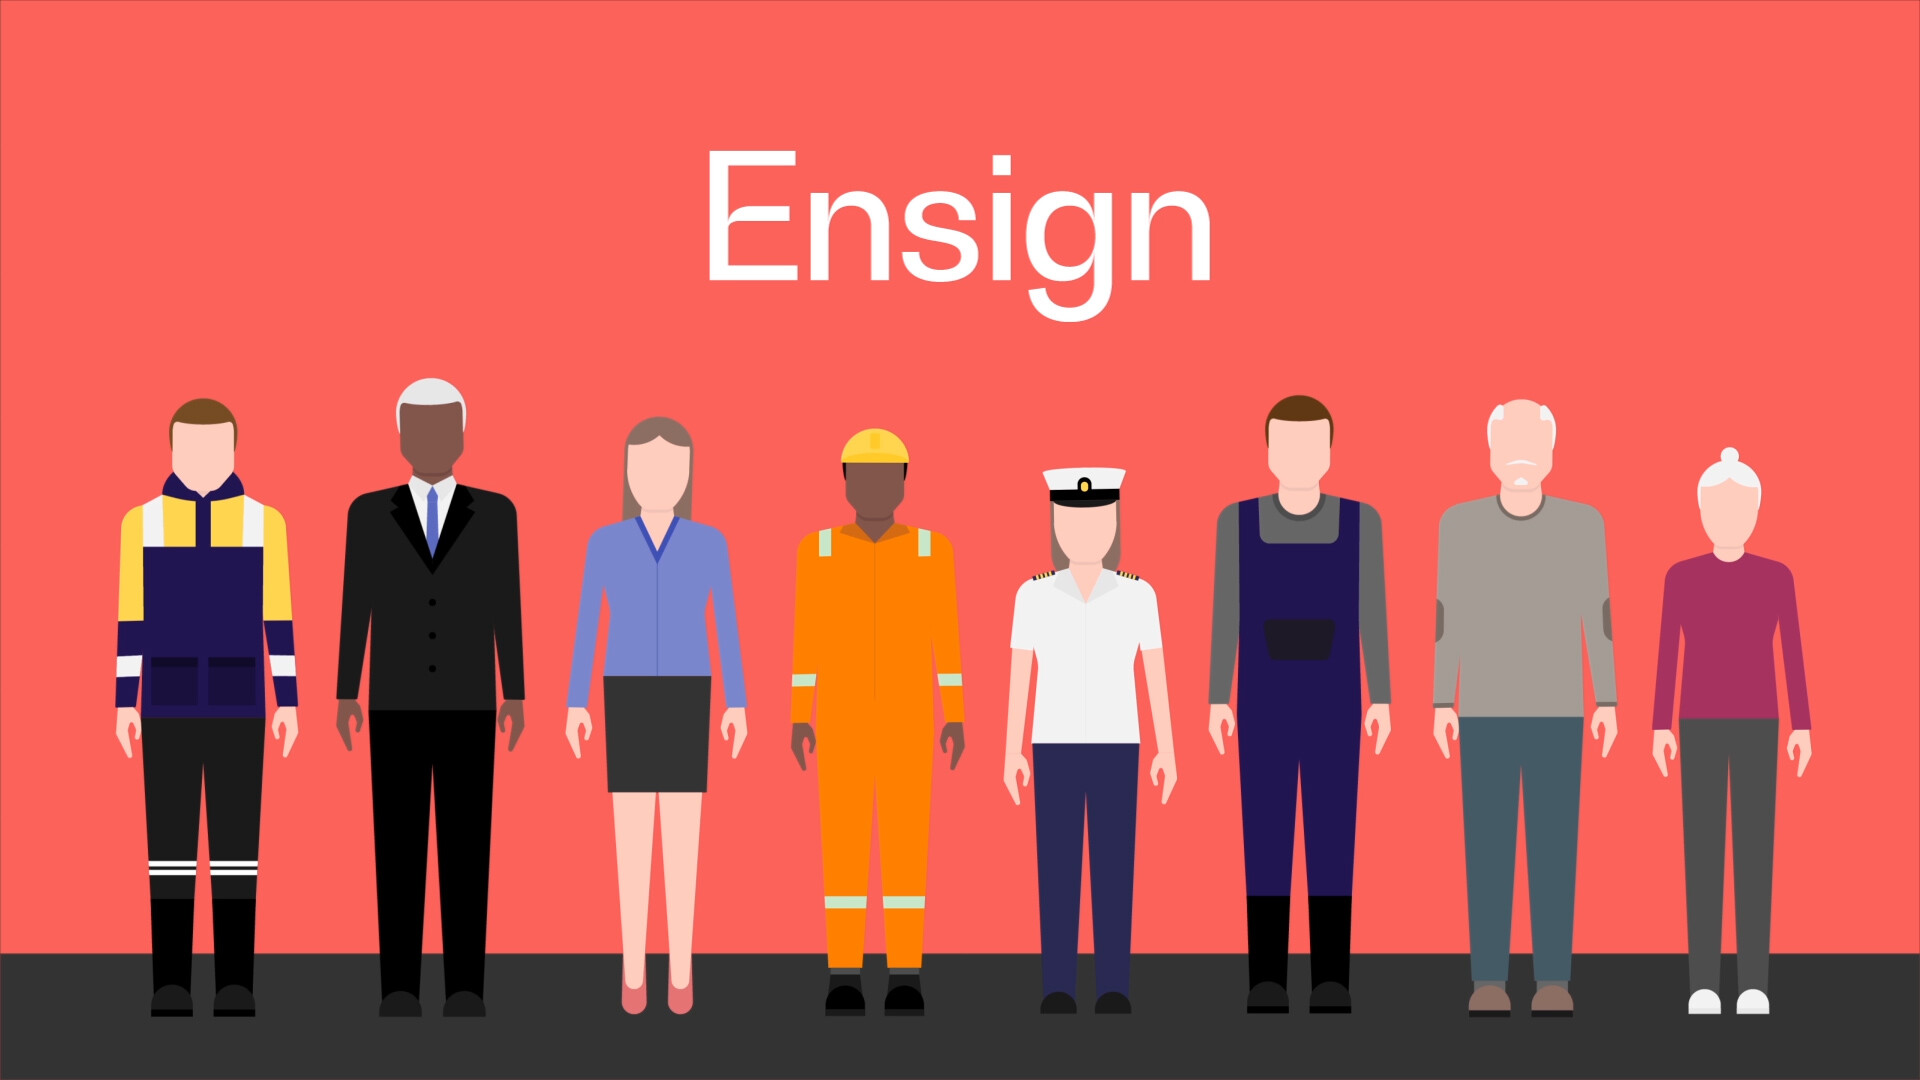 Ensign - Illustration of multiple people in various job roles on a red background